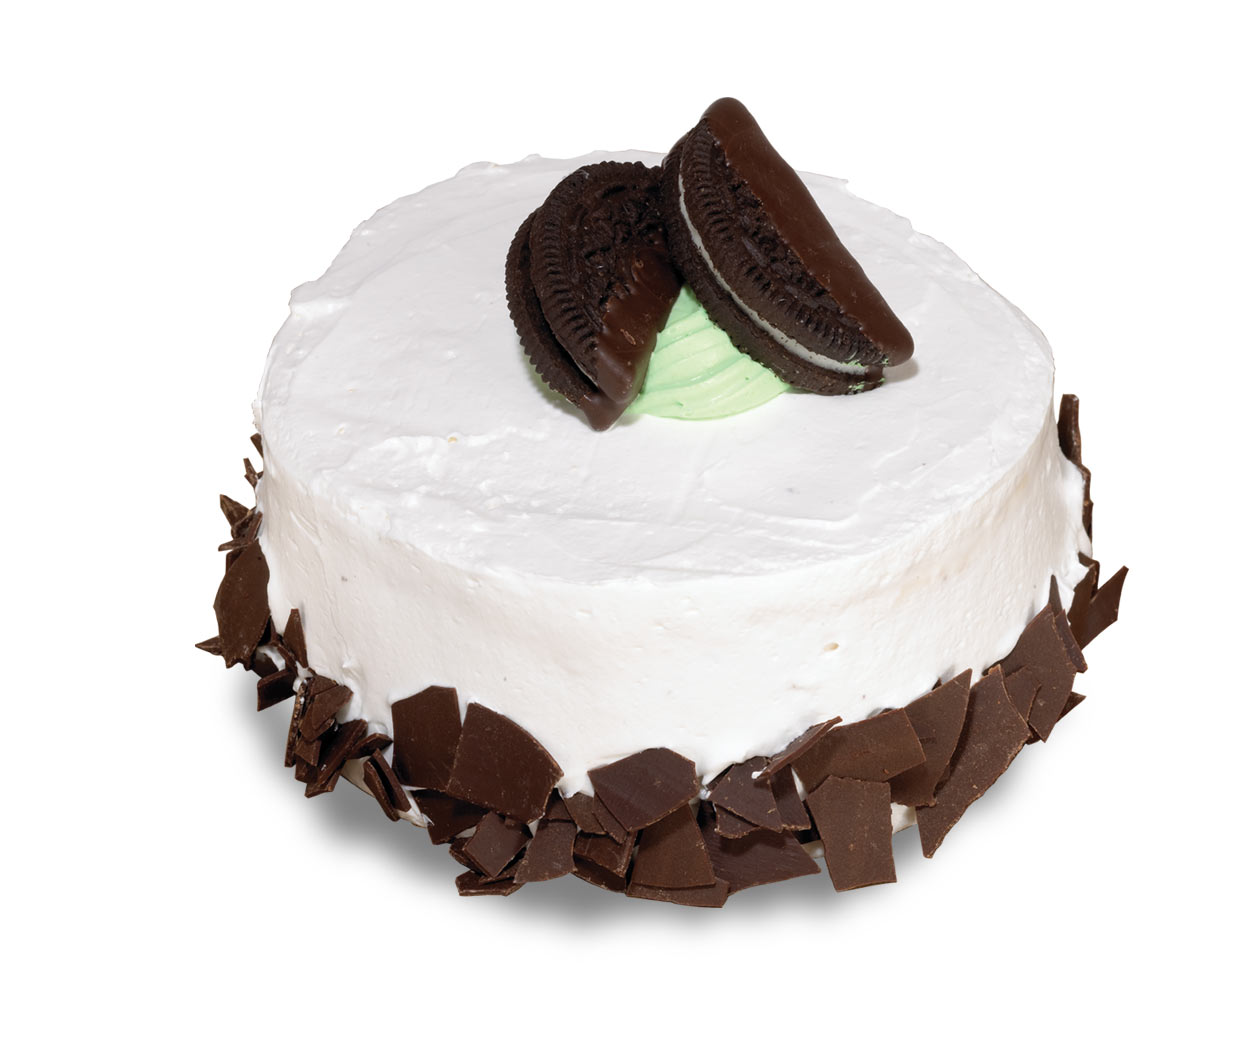 petite mmmint Ice Cream Cake With Ice Cream Sandwiches